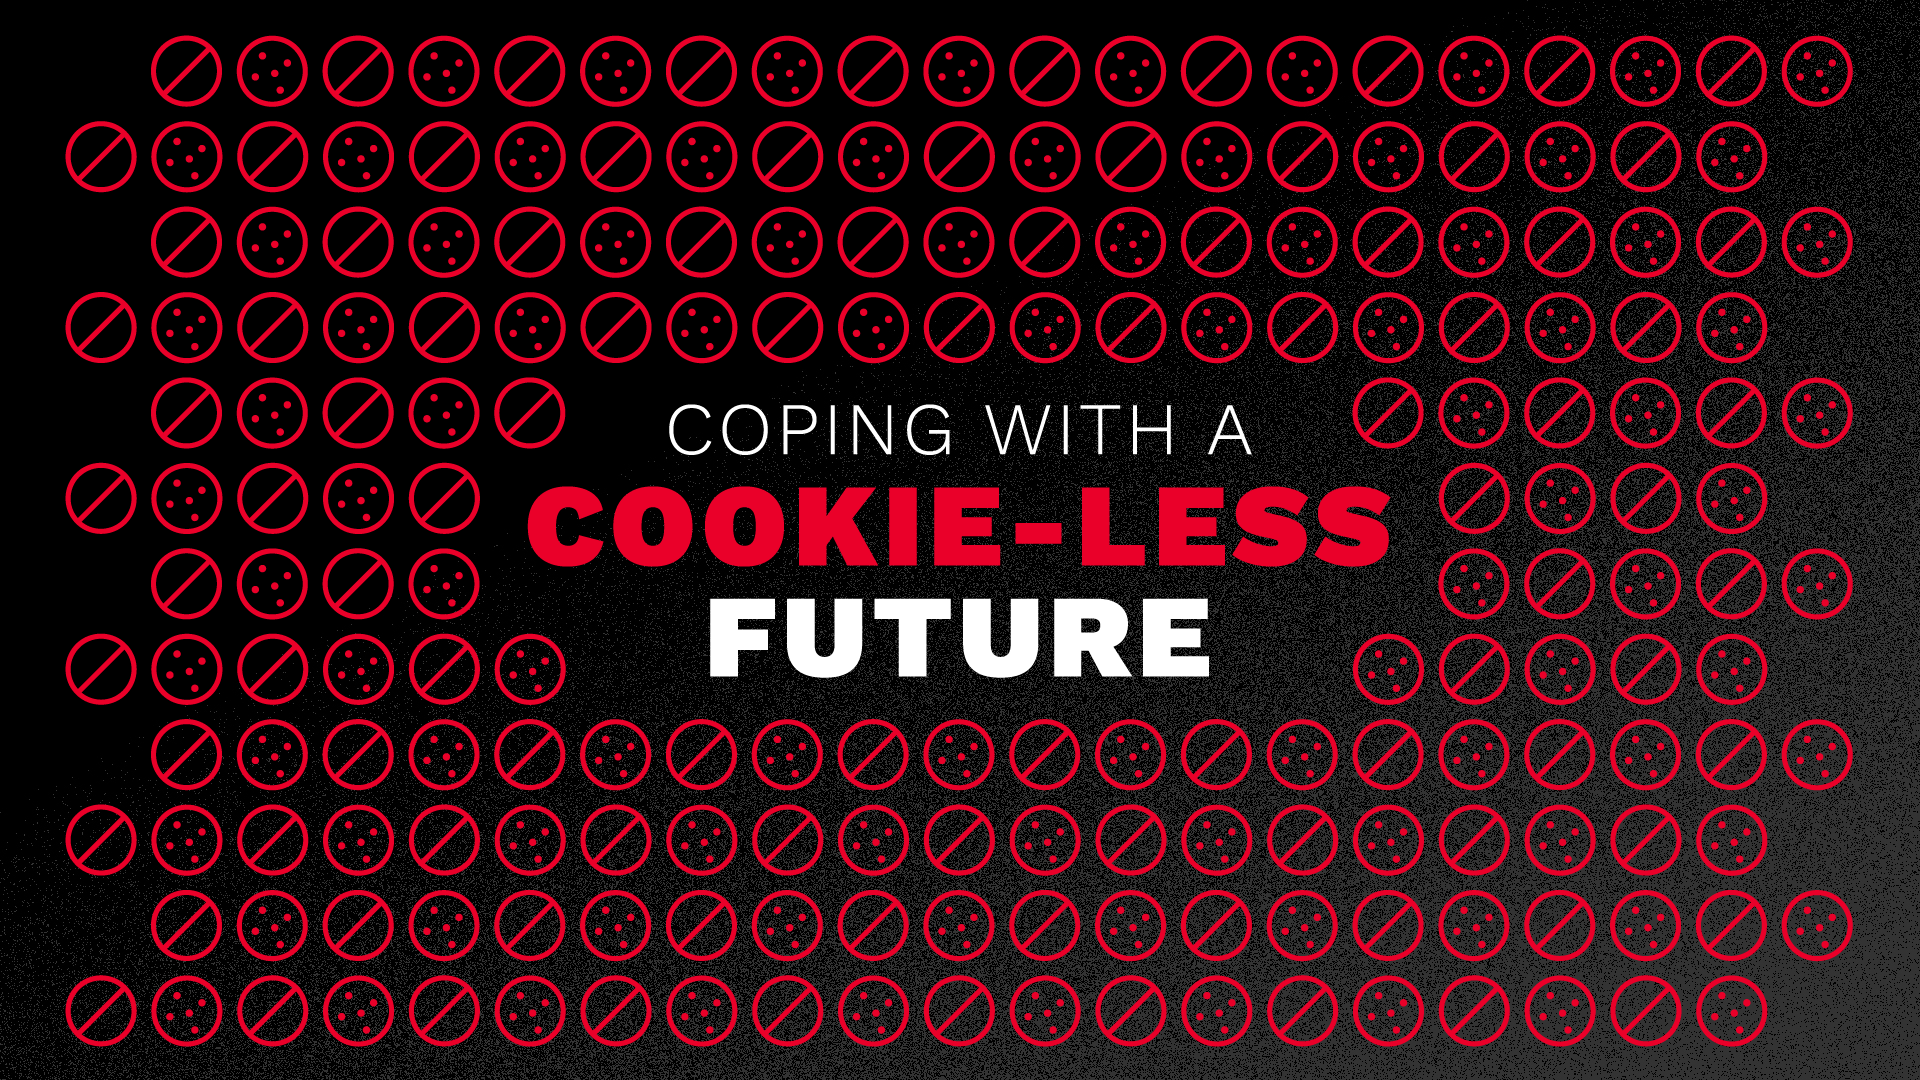 Coping with a Cookie-less Future